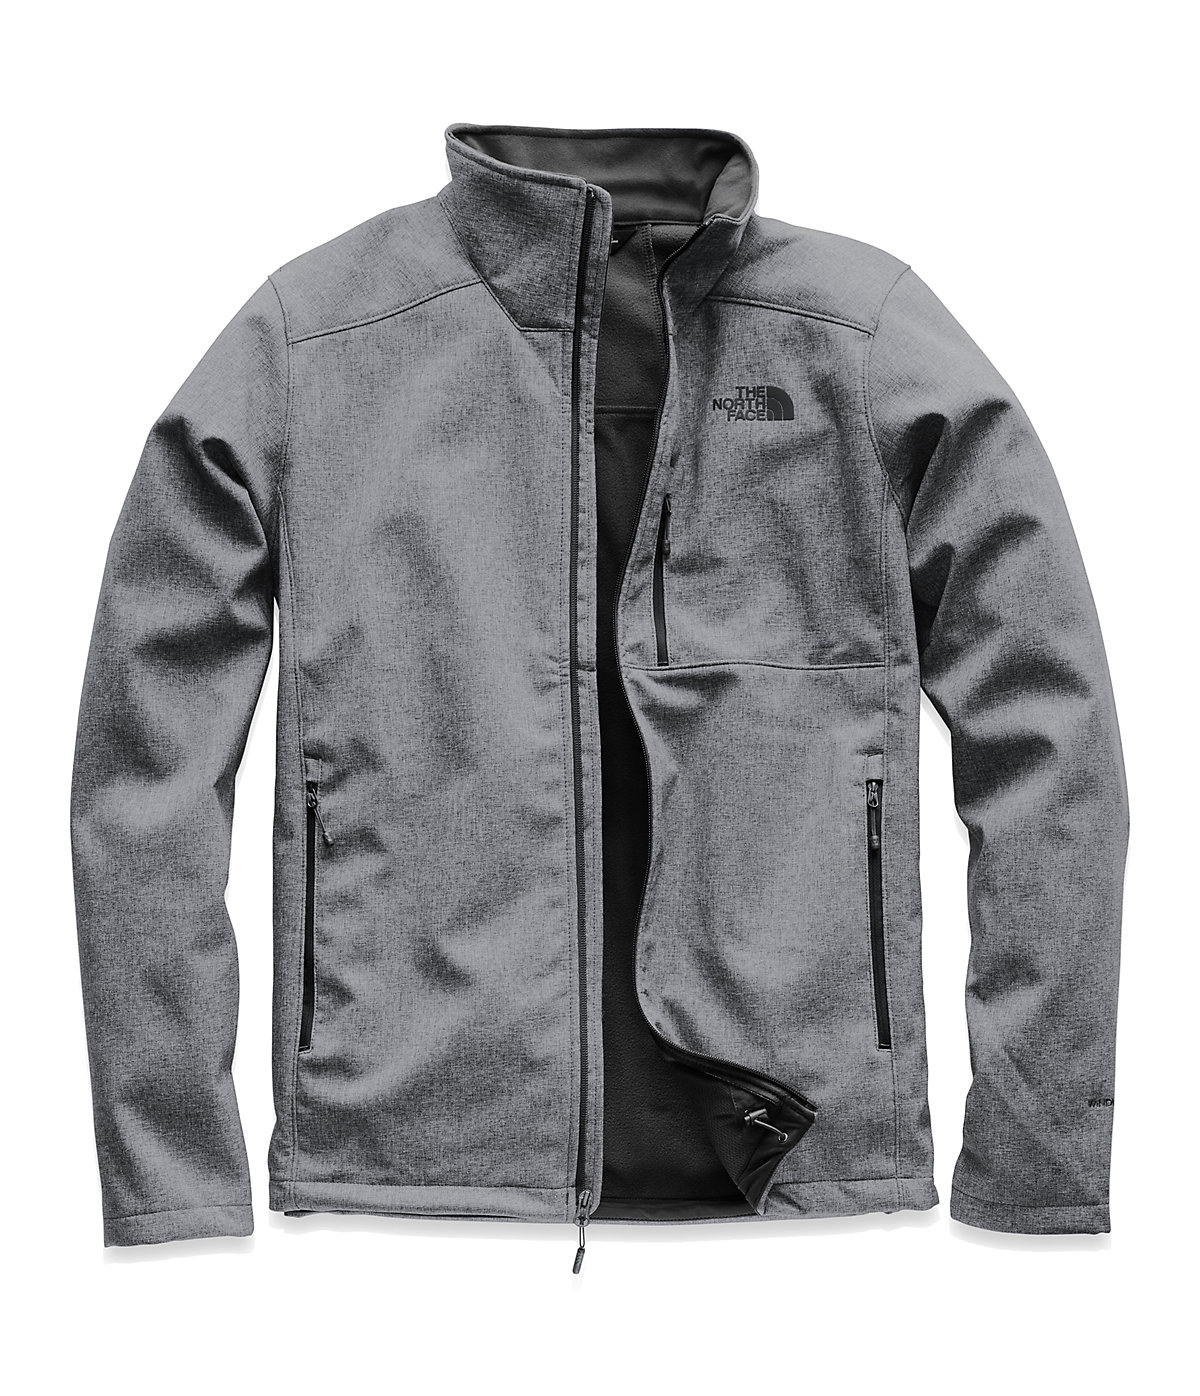 6a8bb8f98 The North Face Men's Apex Bionic 2 Jacket -- Tall in 2019   Products ...